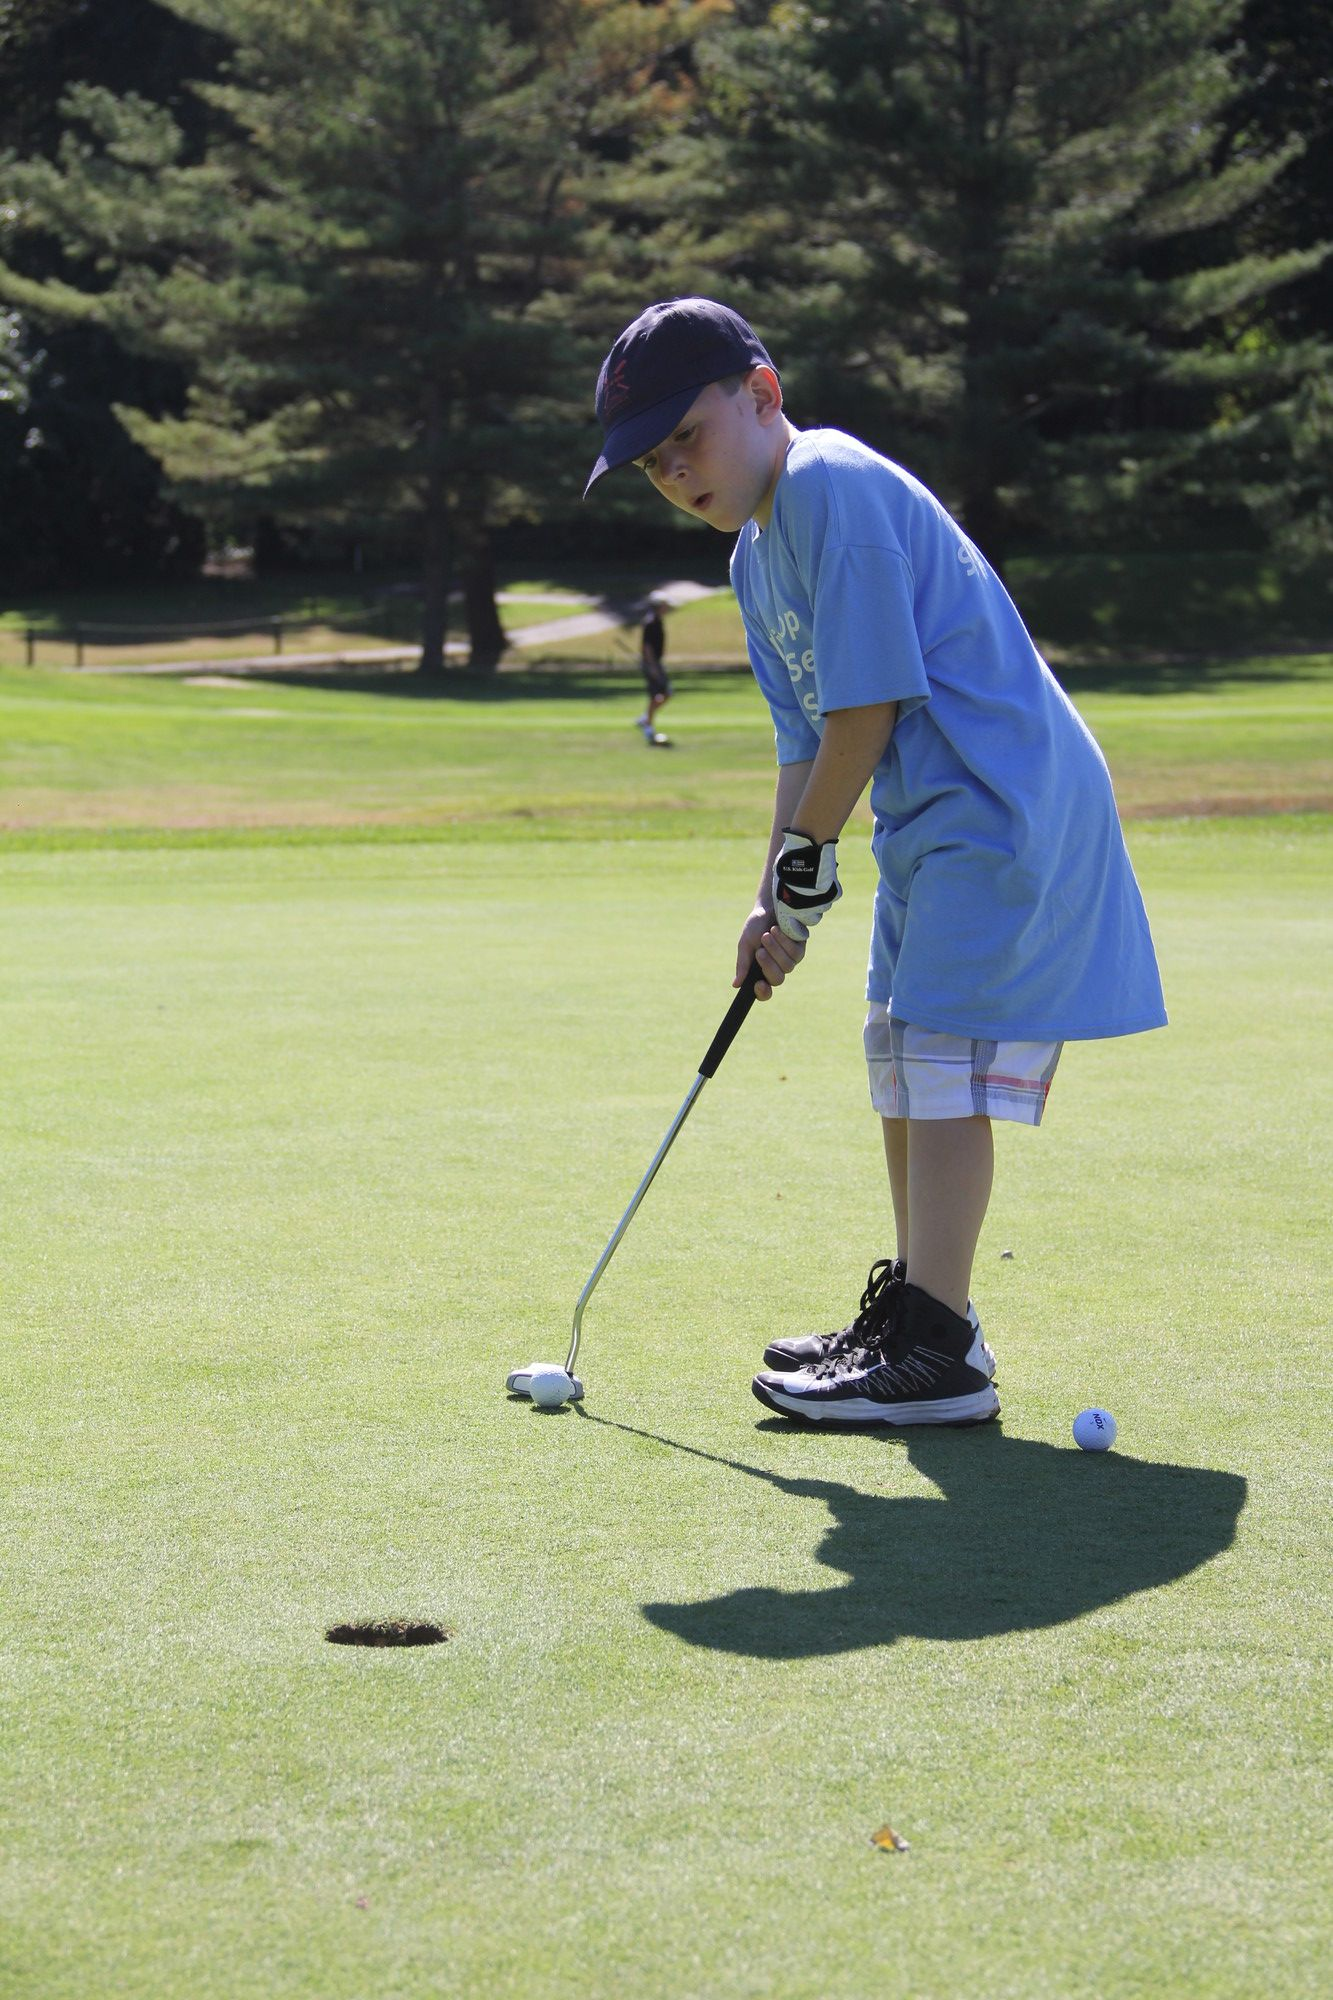 Sean Hatzfeld lined up a put at the Tee Up to Drive Out Sepsis golf outing at Glen Cove Golf Club on Sept. 30, which raised $25,000 for sepsis education and treatment at Winthrop-University Hospital.